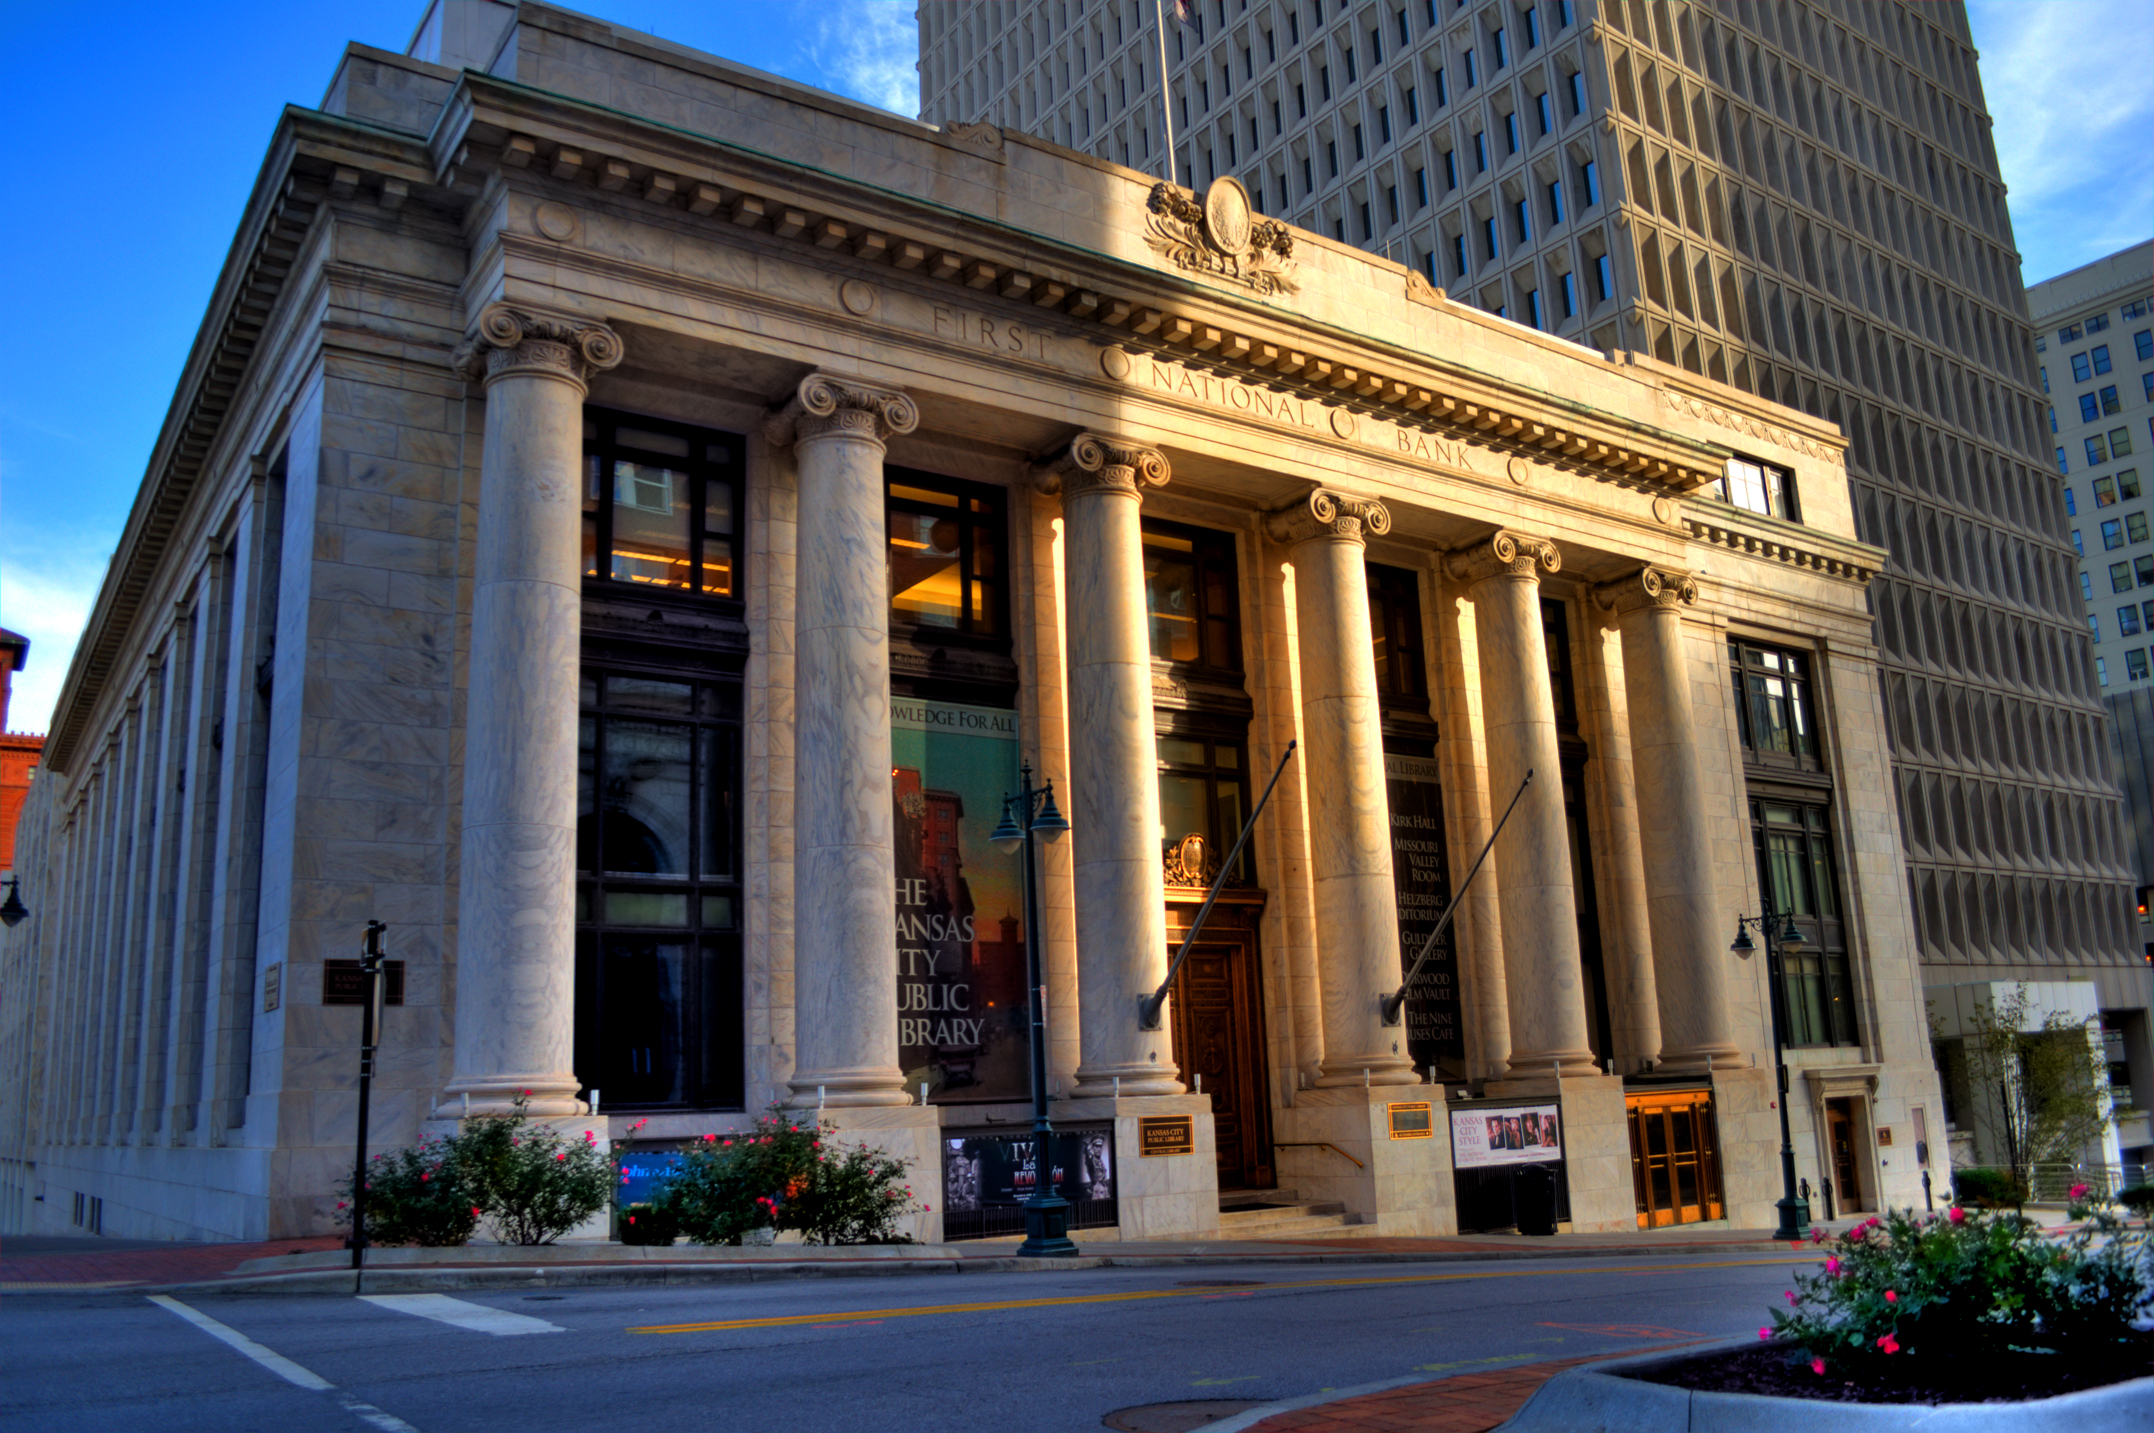 kansas_city_public_library_112.jpg